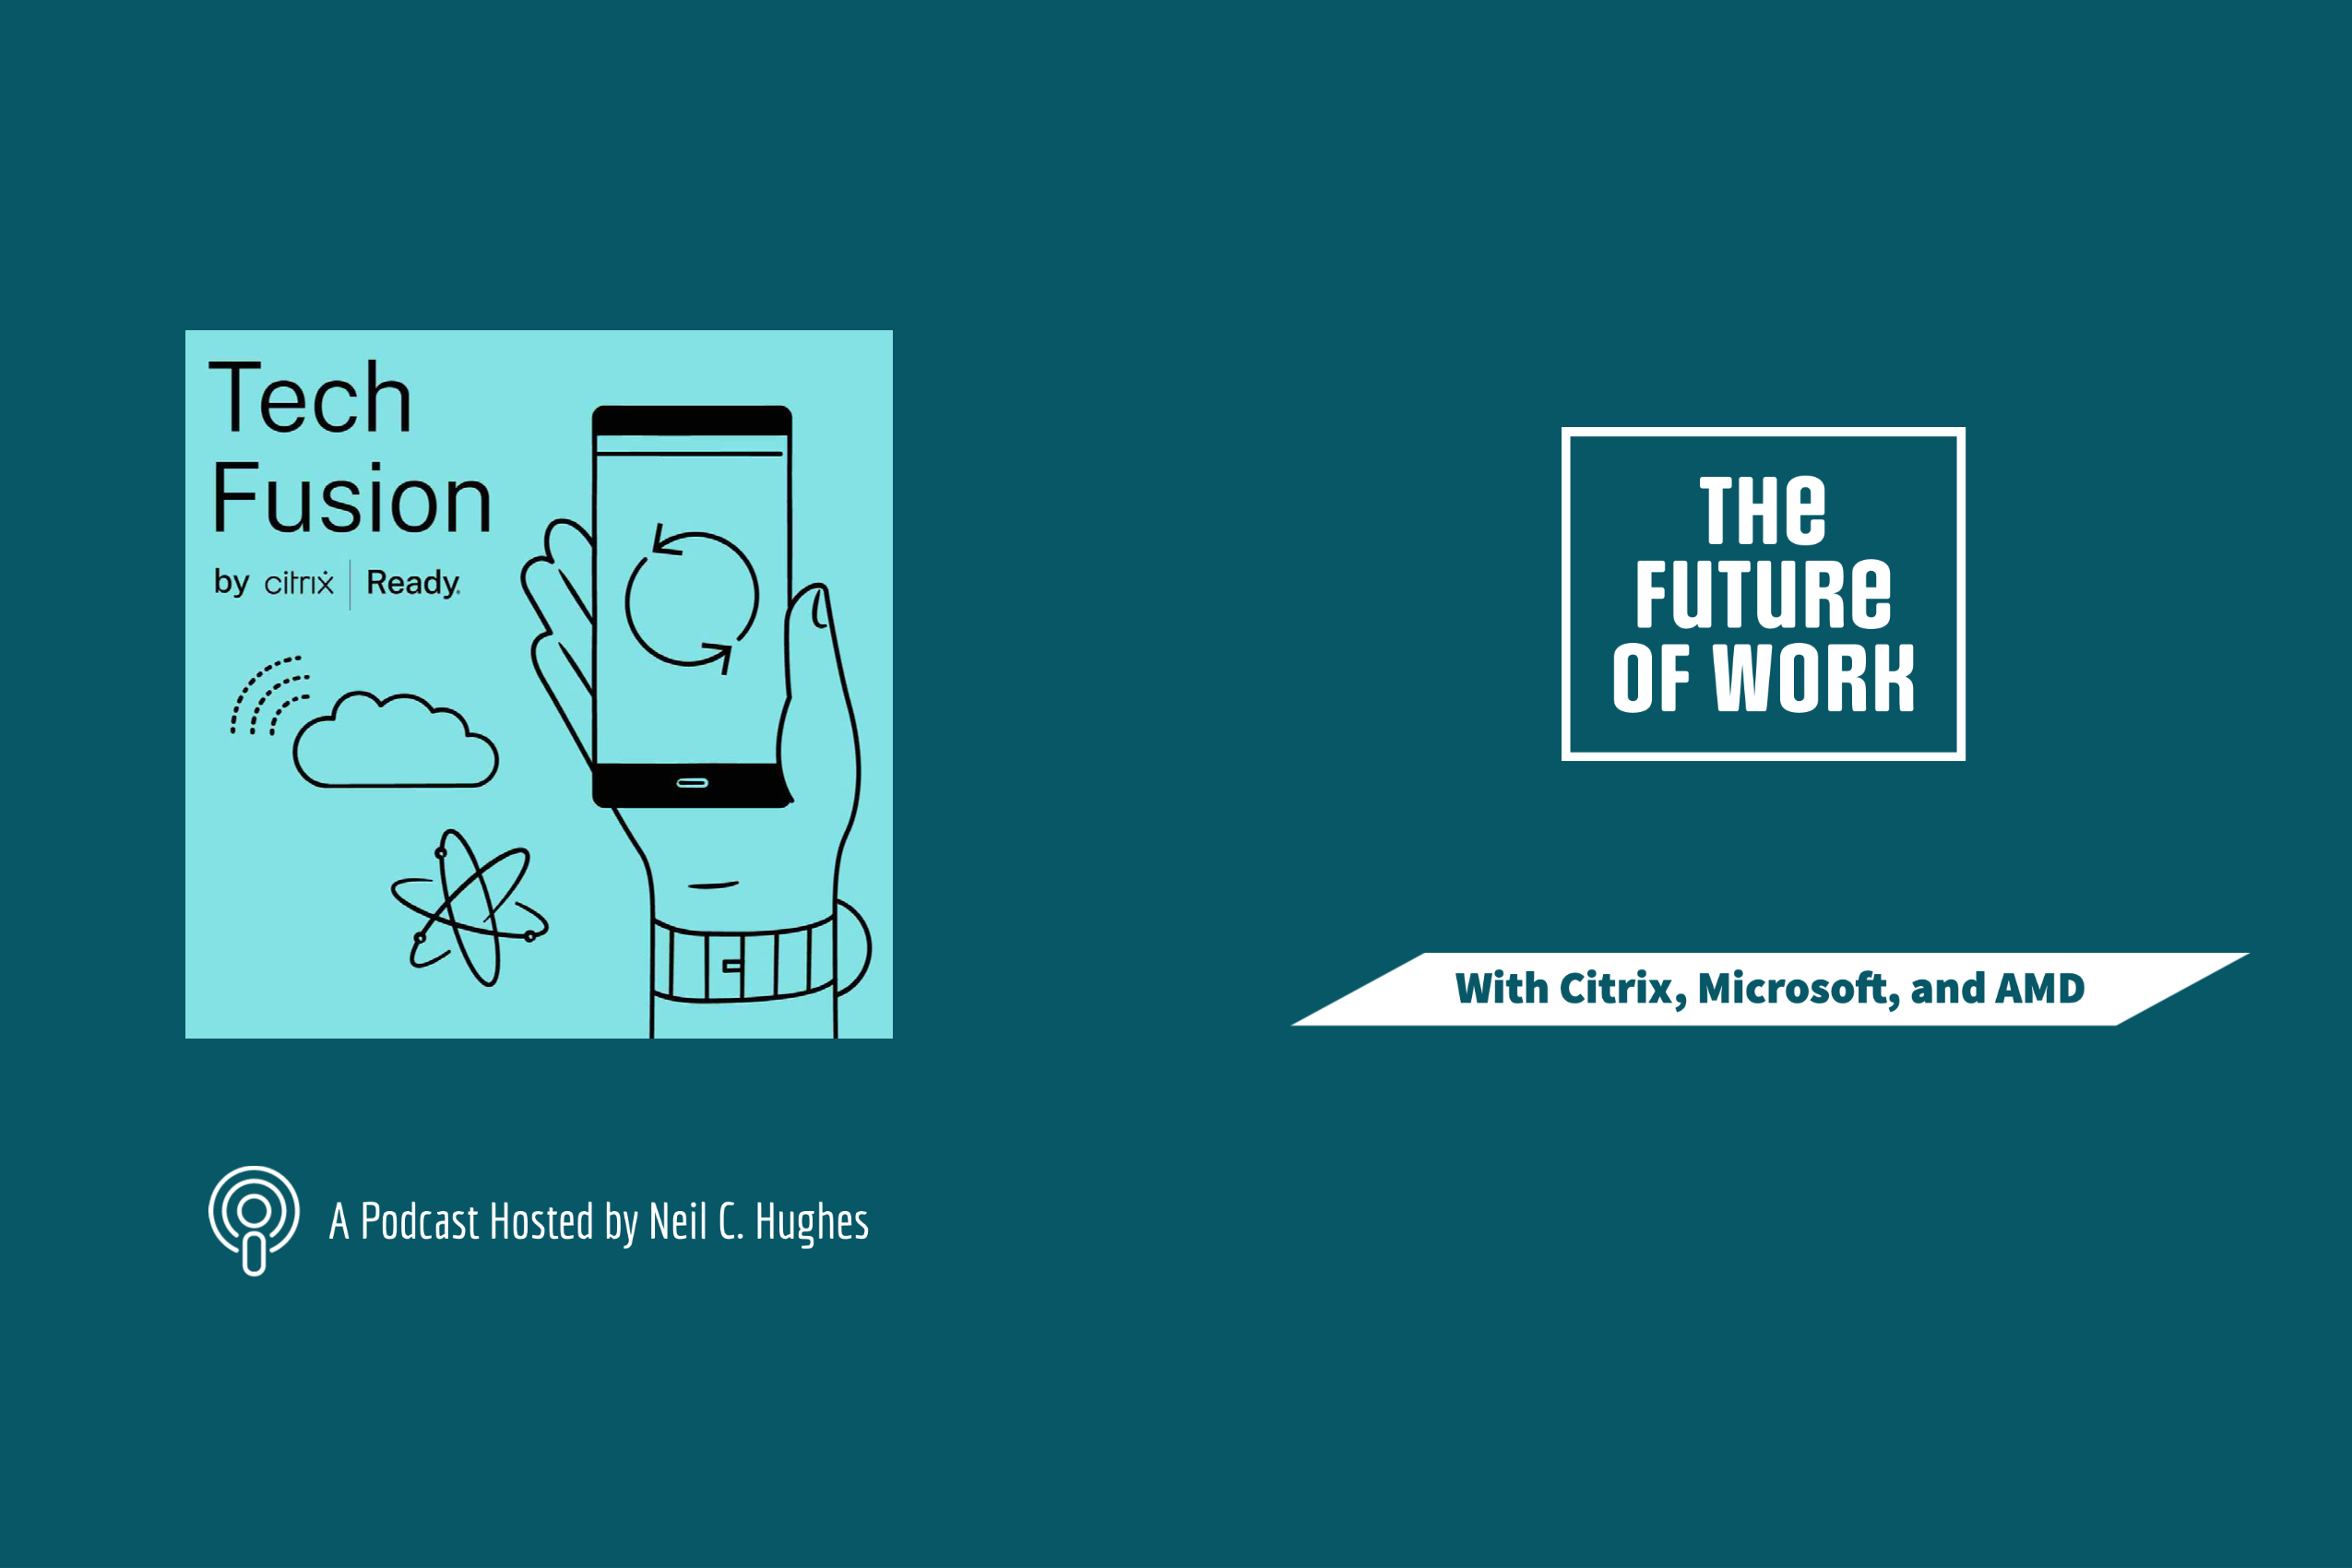 The Future of Work With Microsoft, Citrix, and AMD